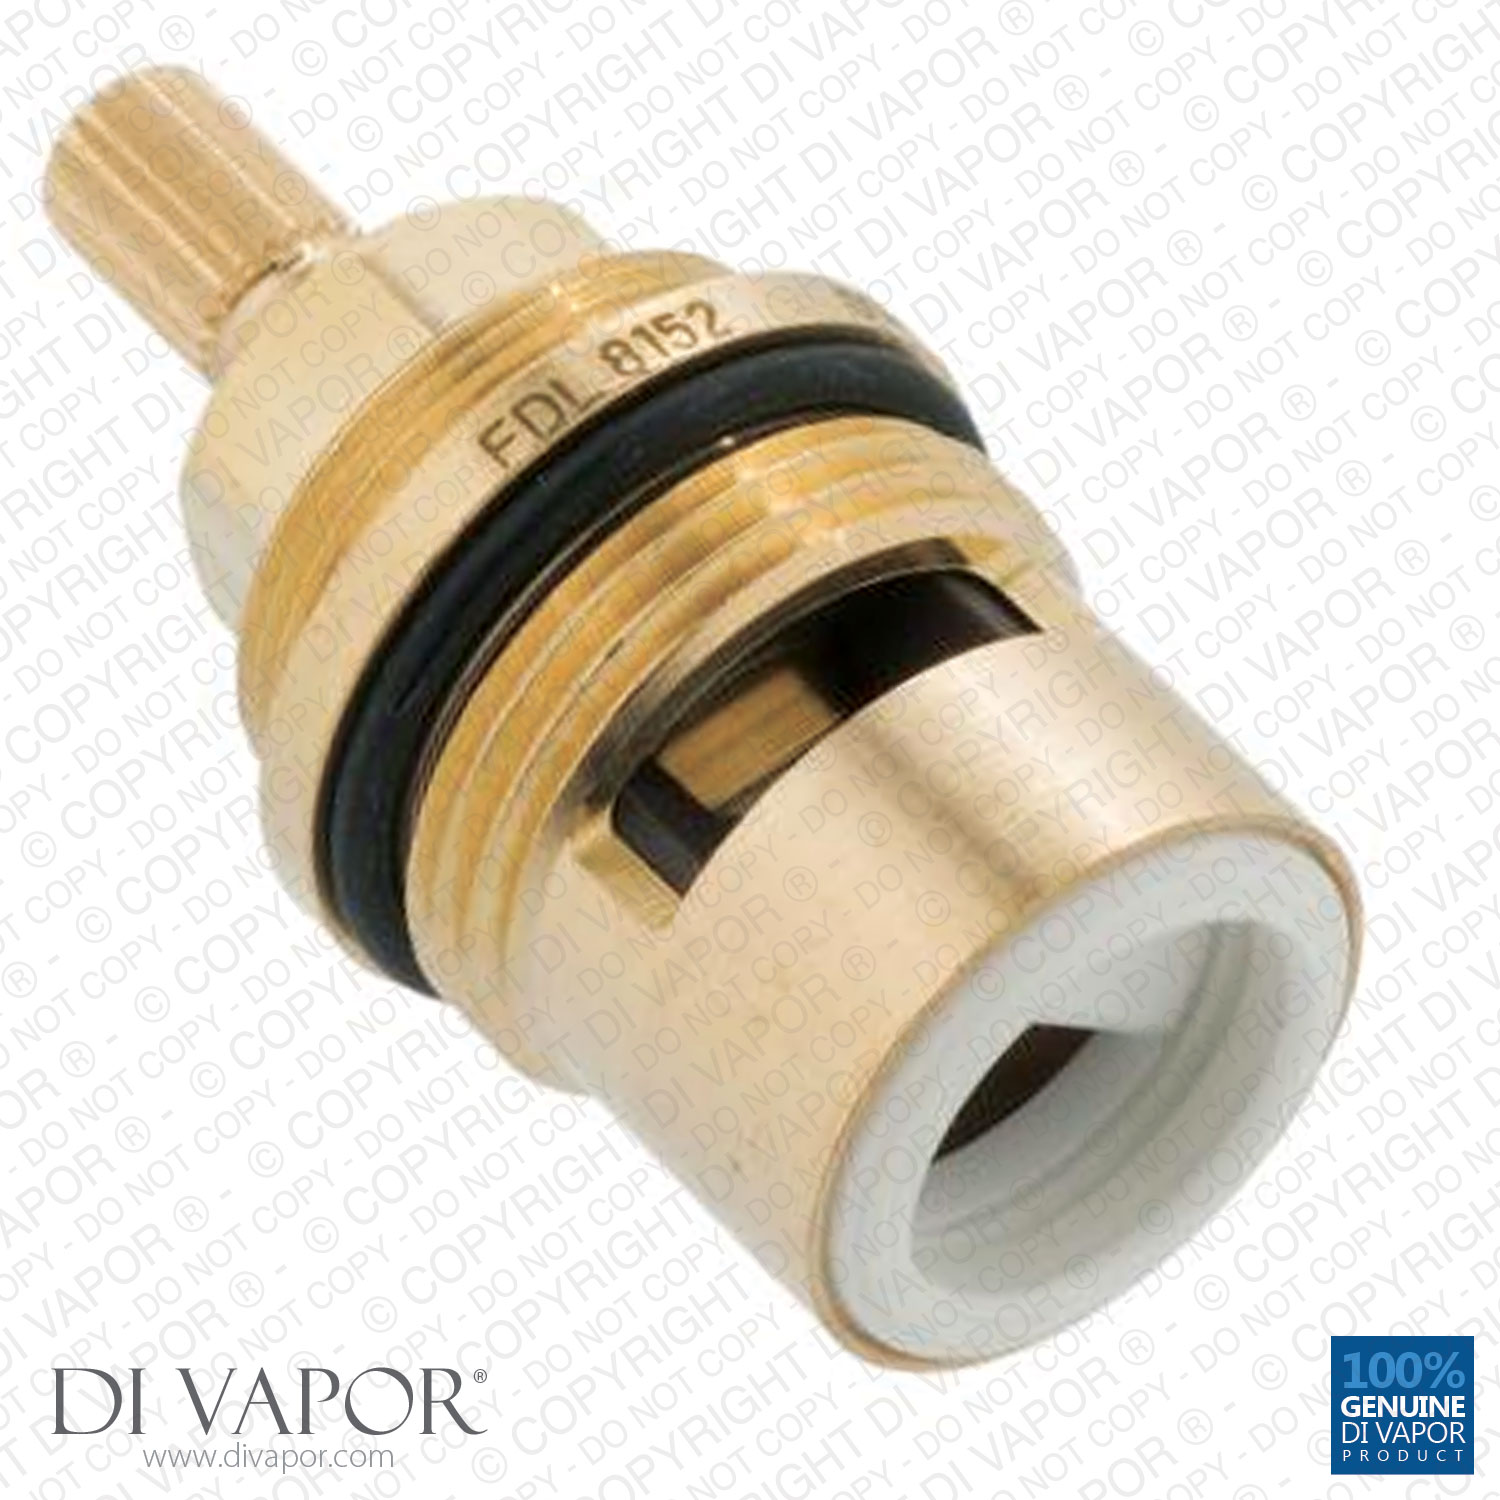 Good Eurobath On / Off Flow Cartridge For Shower Mixer Valves